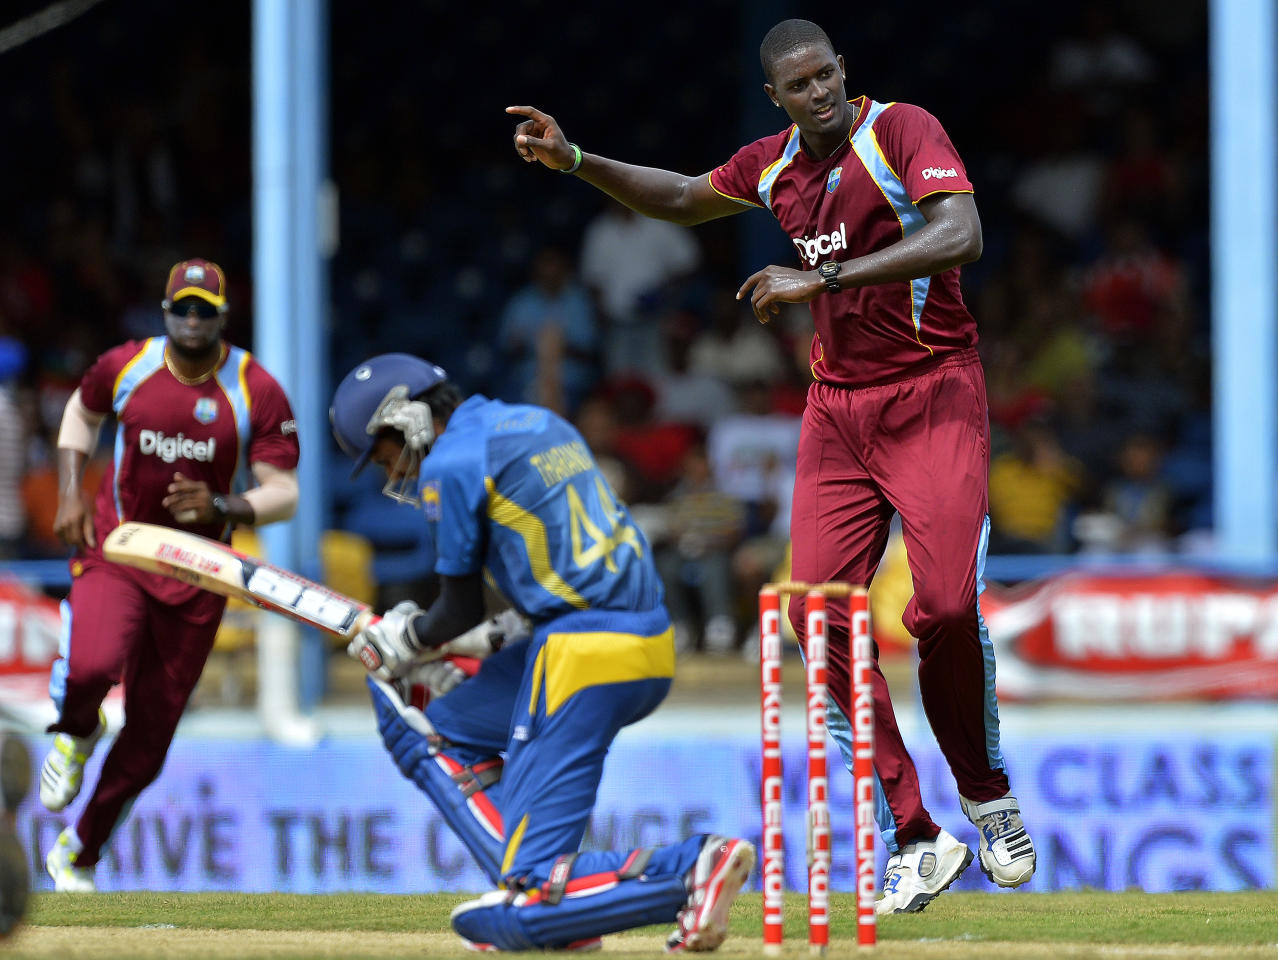 West Indies bowler Jason Holder (R) celebrates dismissing Sri Lankan batsman Upul Tharanga (L) during the fifth match of the Tri-Nation series between Sri Lanka and West Indies at the Queen's Park Oval in Port of Spain on July 7, 2013. West Indies won the toss and elected to field. AFP PHOTO/Jewel Samad